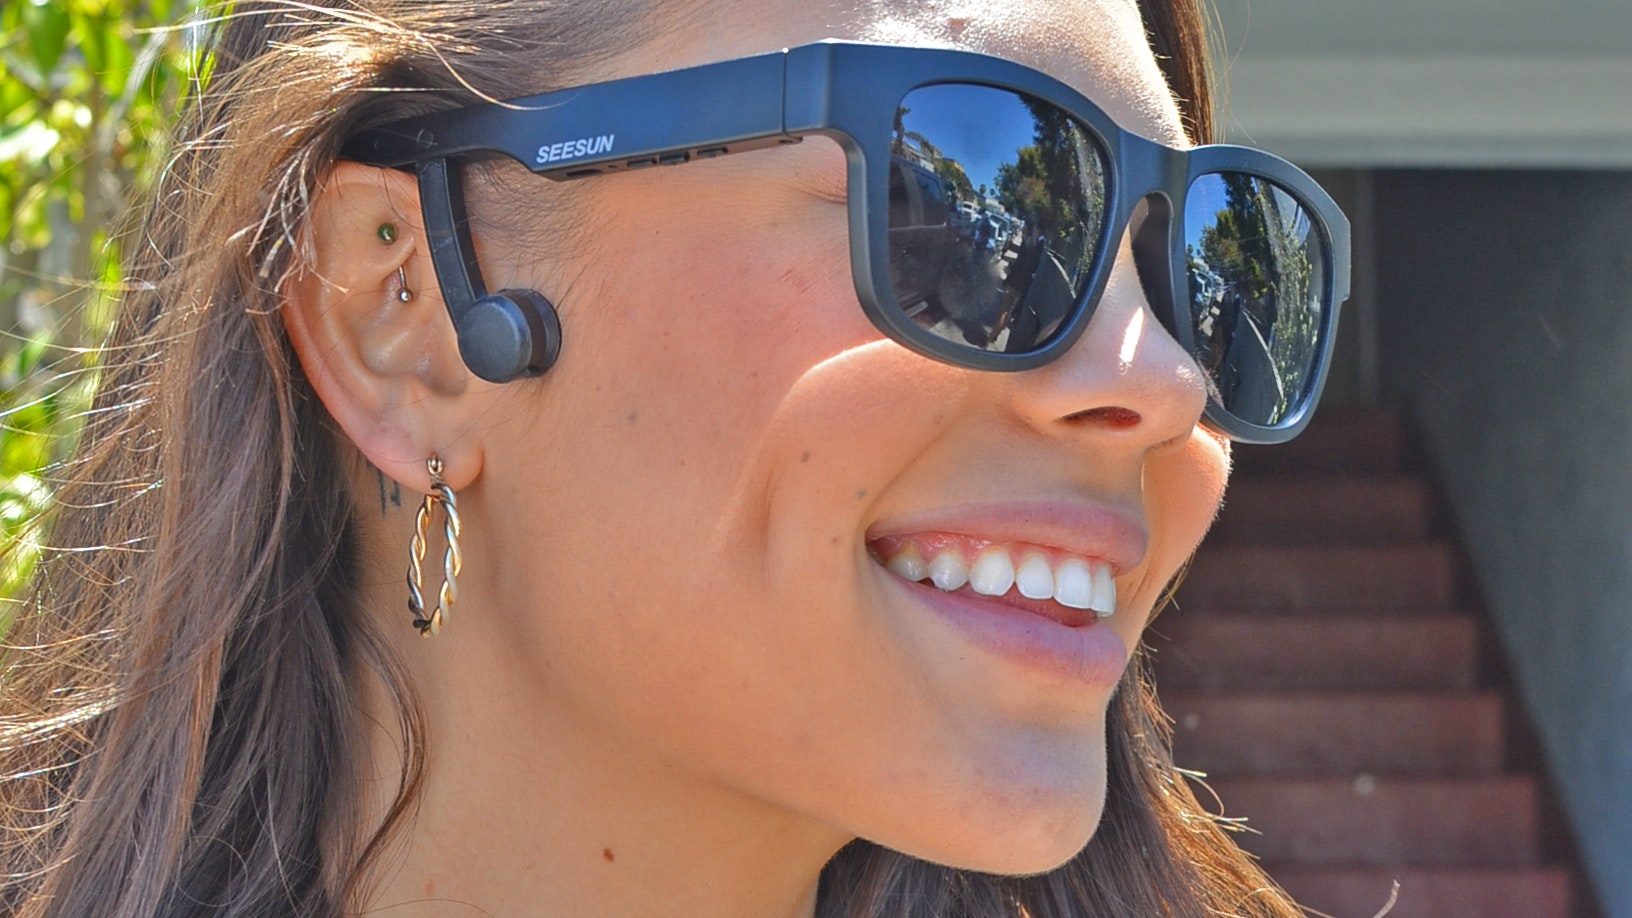 018ee9861968 Could bone conduction audio sunglasses be the hottest new summer tech?